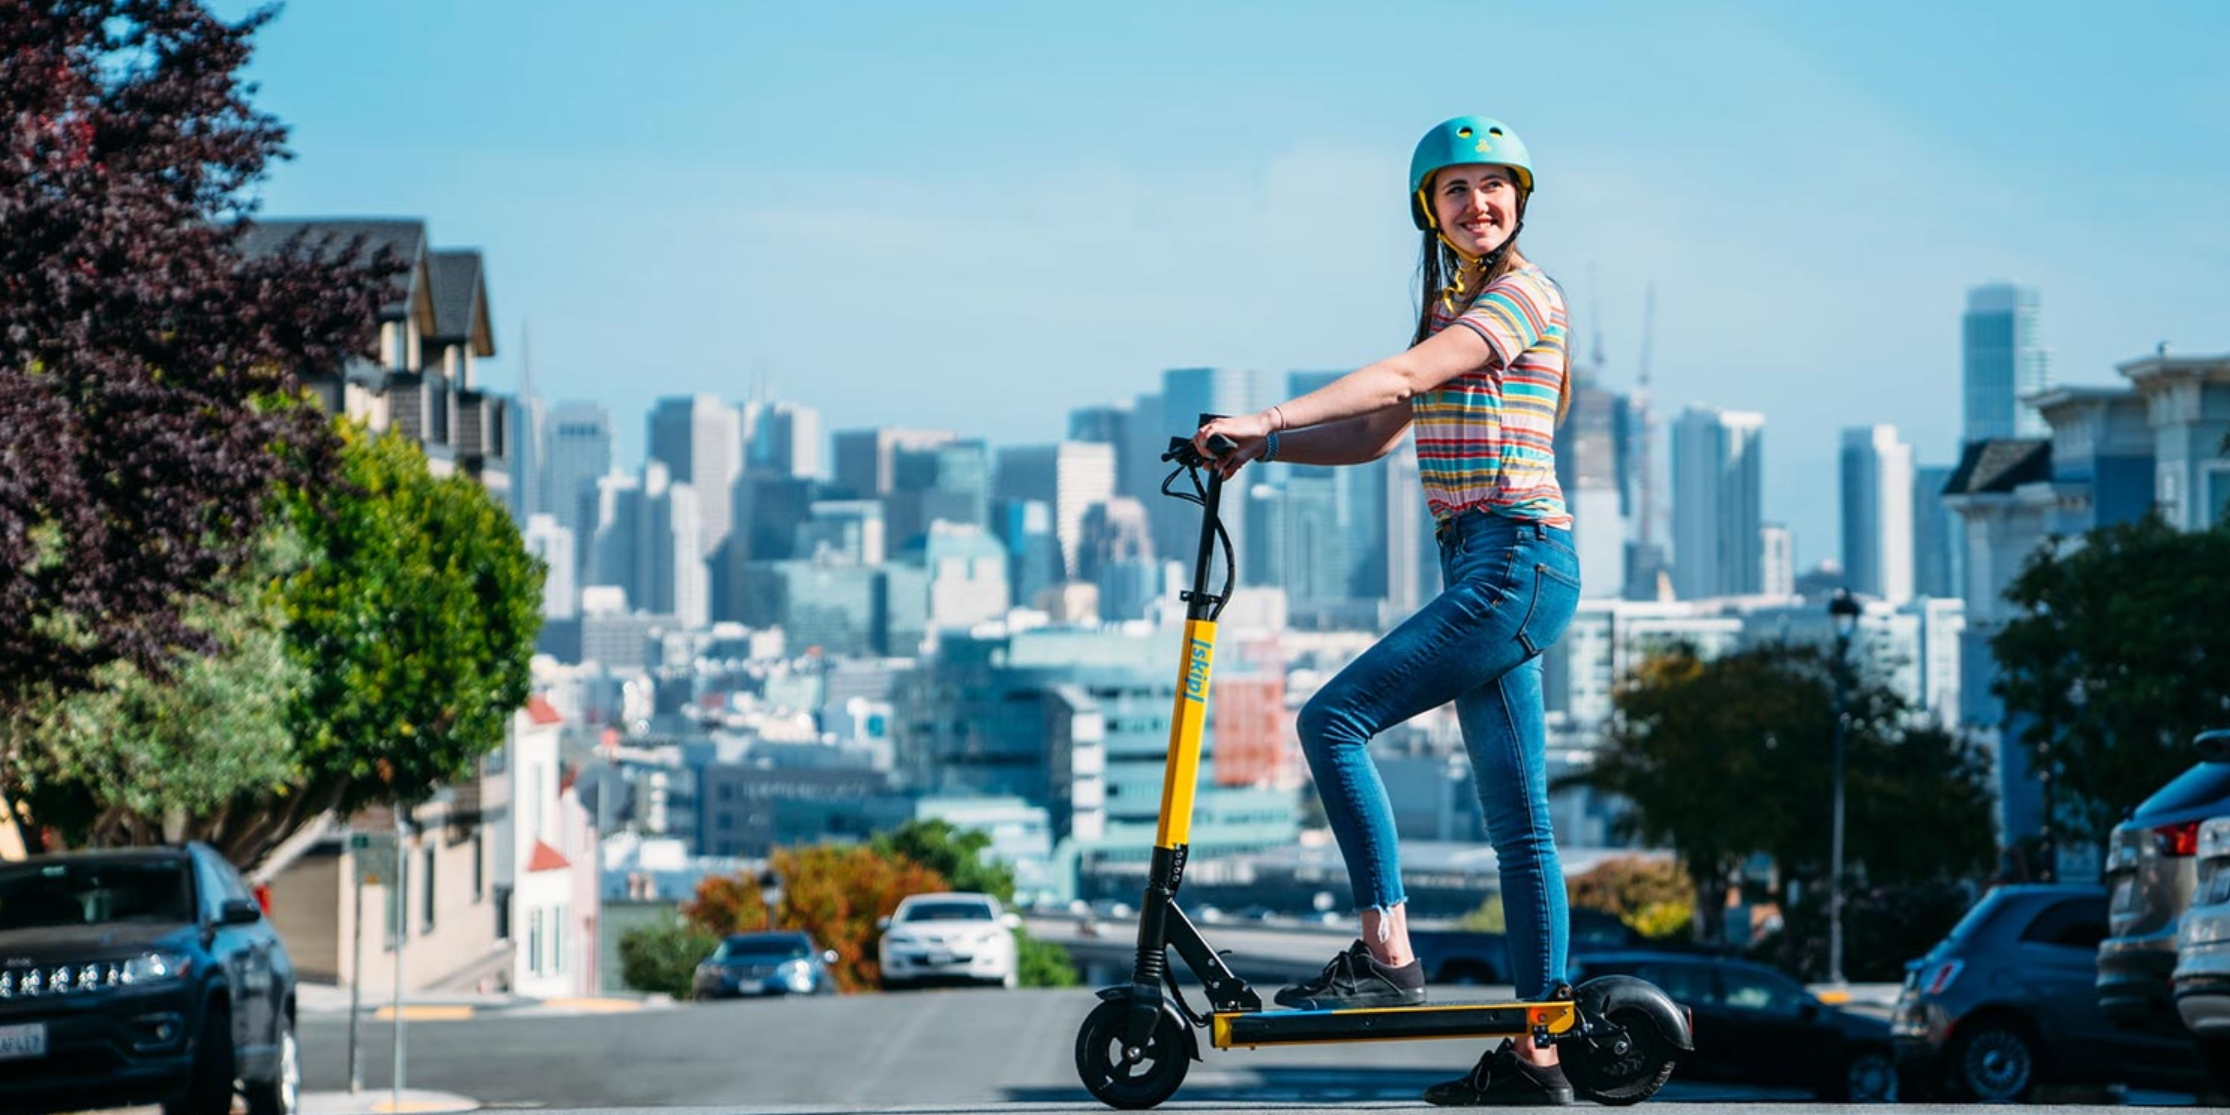 Boosted Board founders enter electric scooter wars, intend to compete on quality and ethics